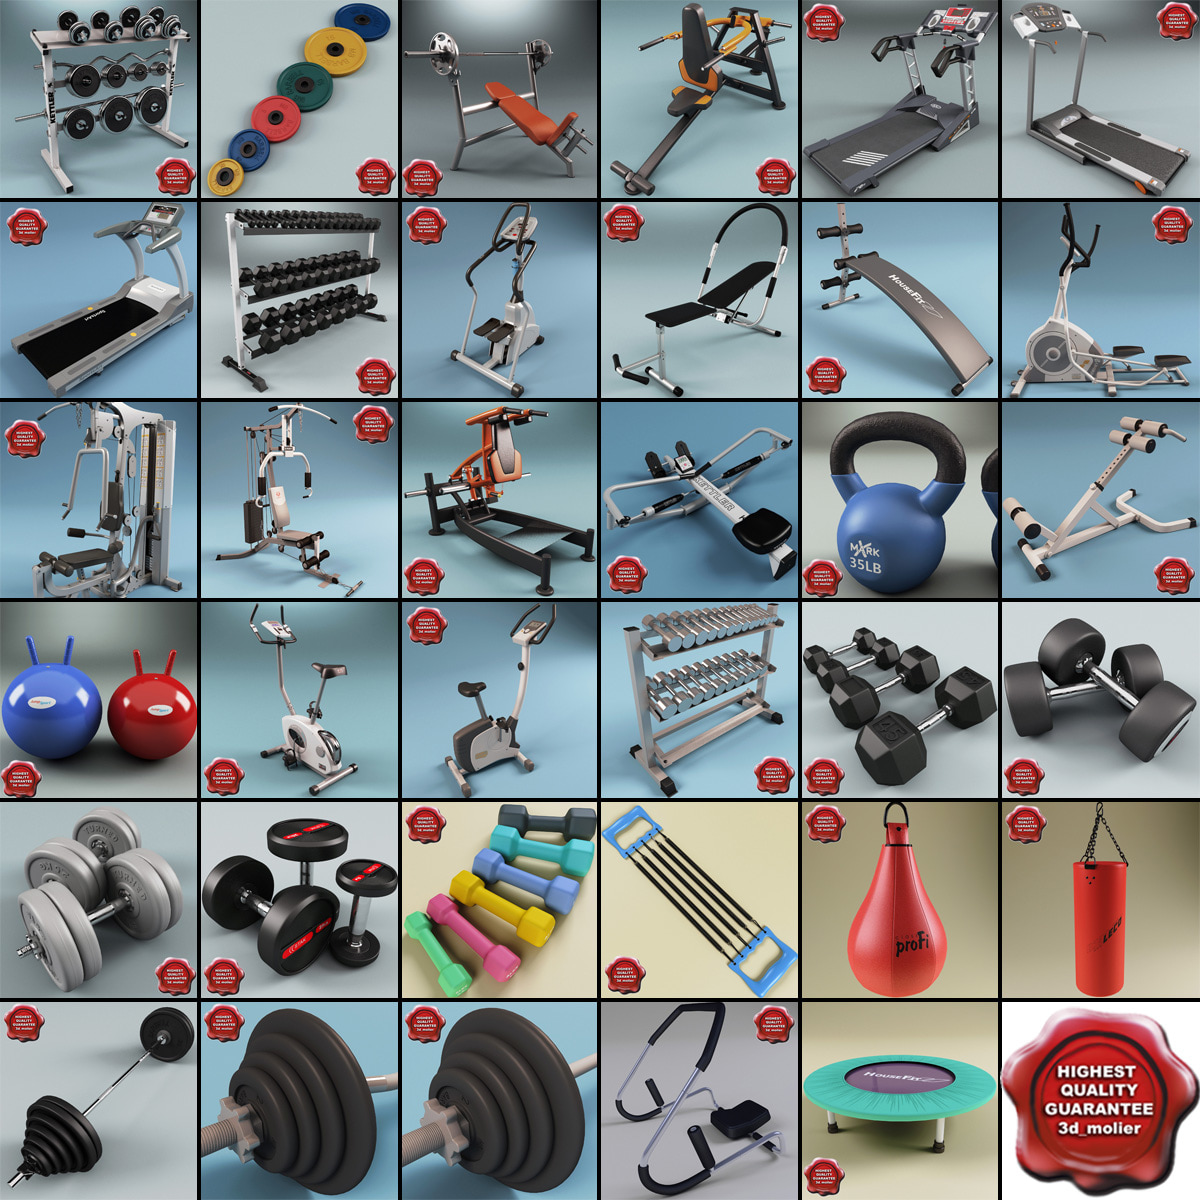 Gym_Equipment_Collection_V7_000.jpg